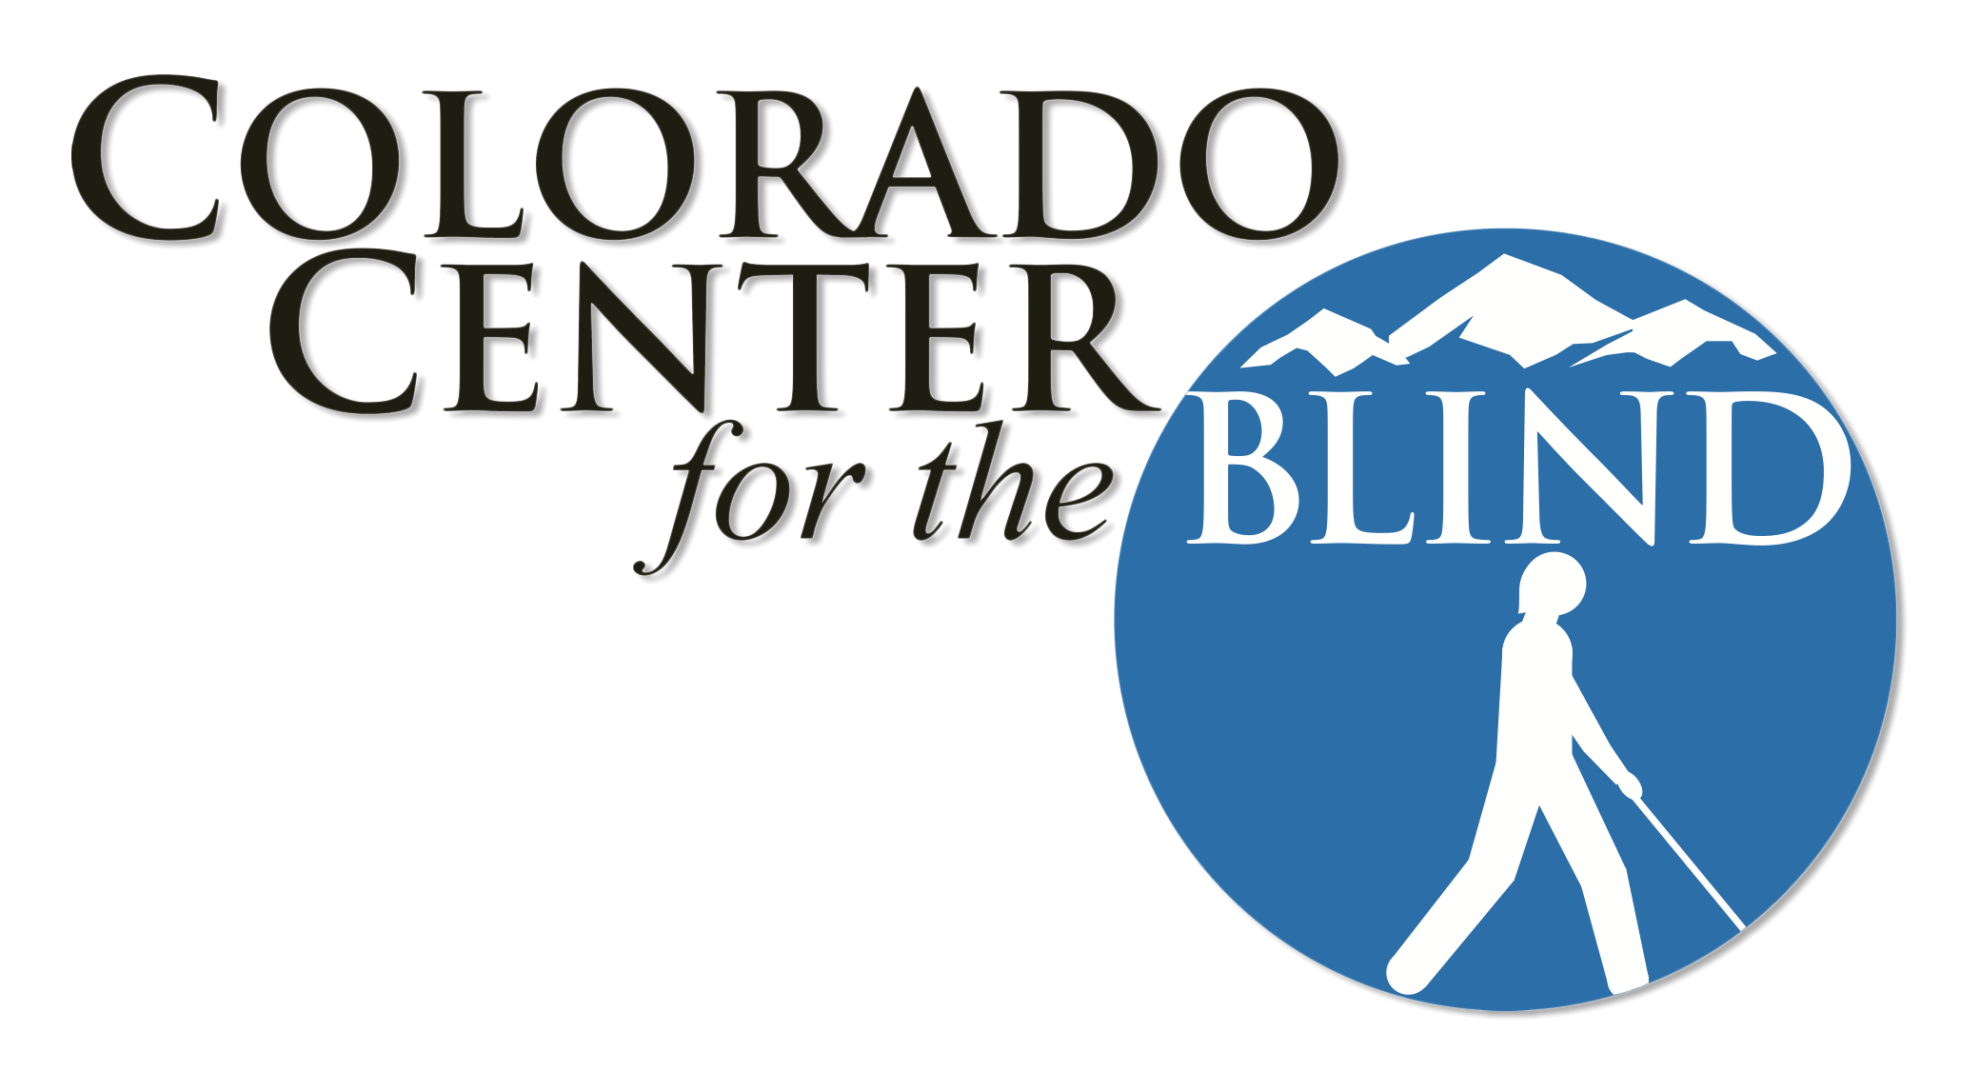 the Colorado Center for the Blind